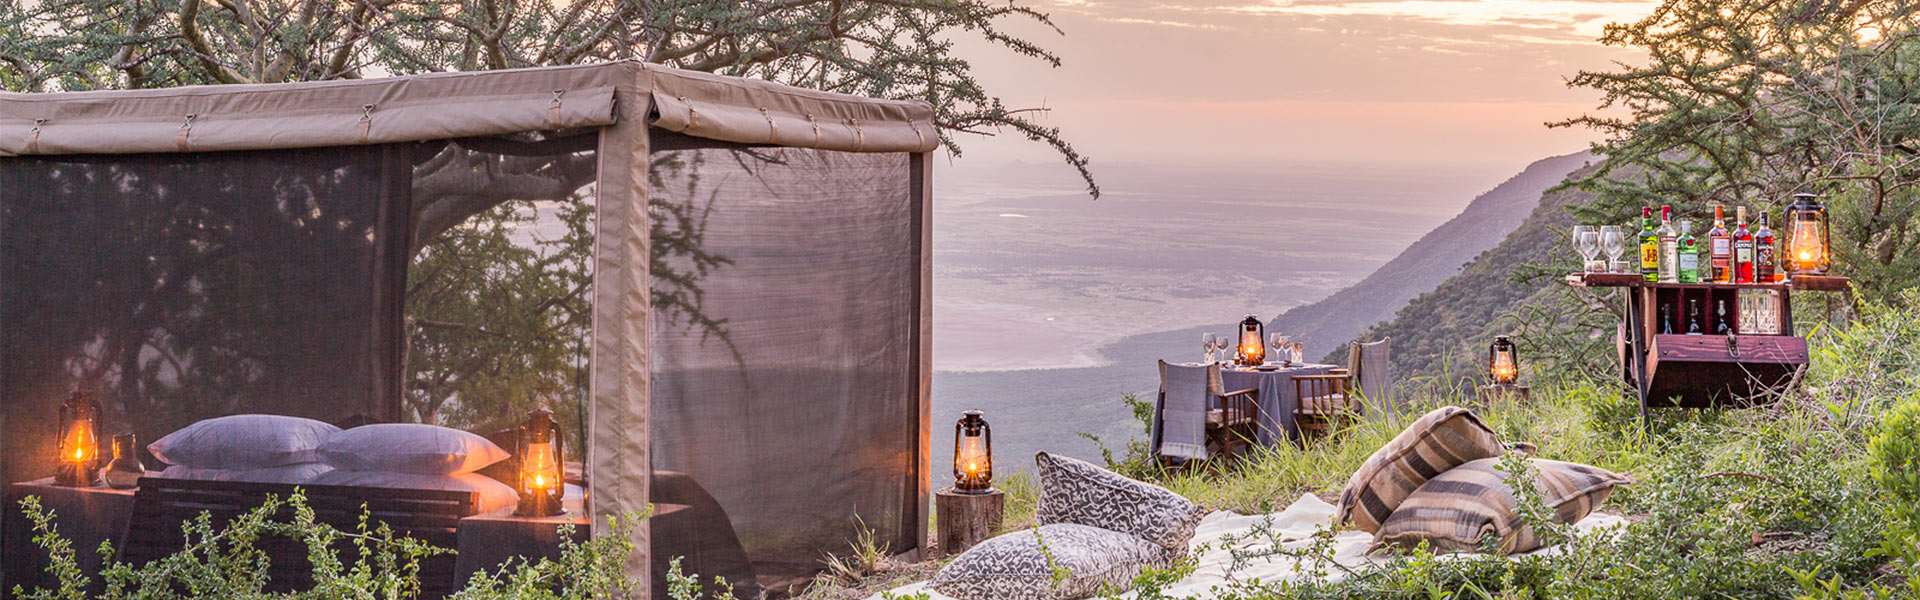 Tanzania Luxury Accommodation